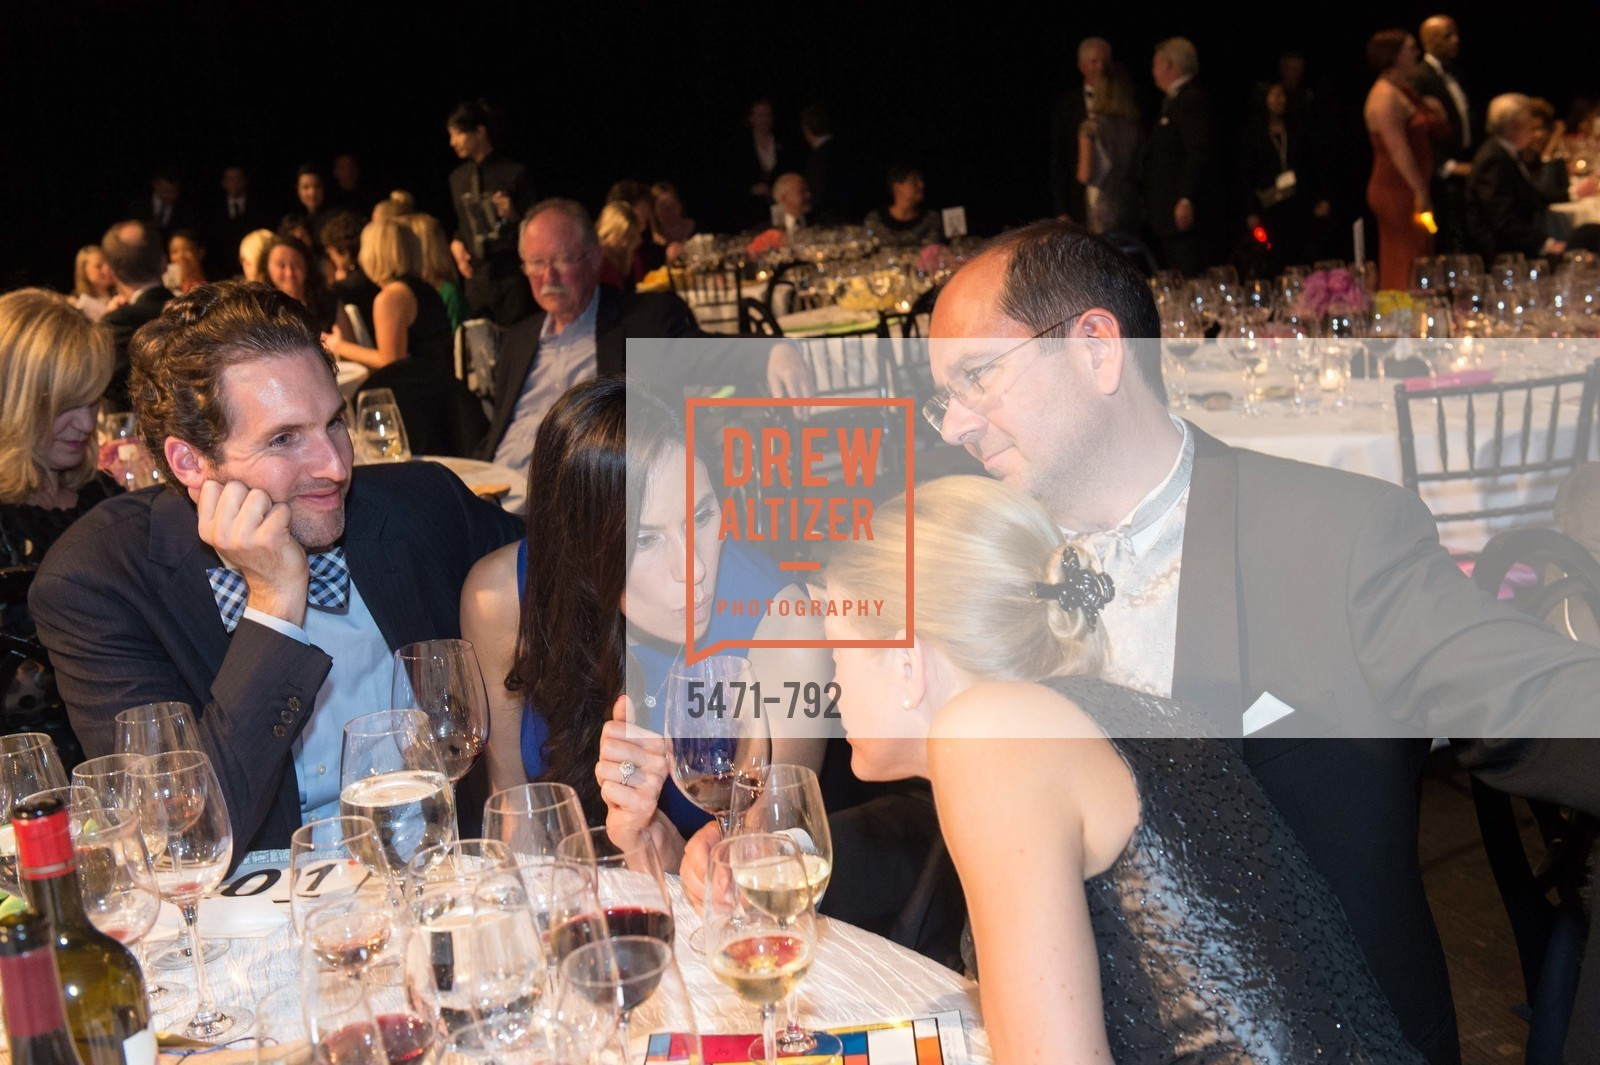 Rob Salvagna, Liz Salvagna, MEALS ON WHEELS OF SAN FRANCISCO'S 28th Annual Star Chefs and Vintners Gala, US, April 20th, 2015,Drew Altizer, Drew Altizer Photography, full-service event agency, private events, San Francisco photographer, photographer California